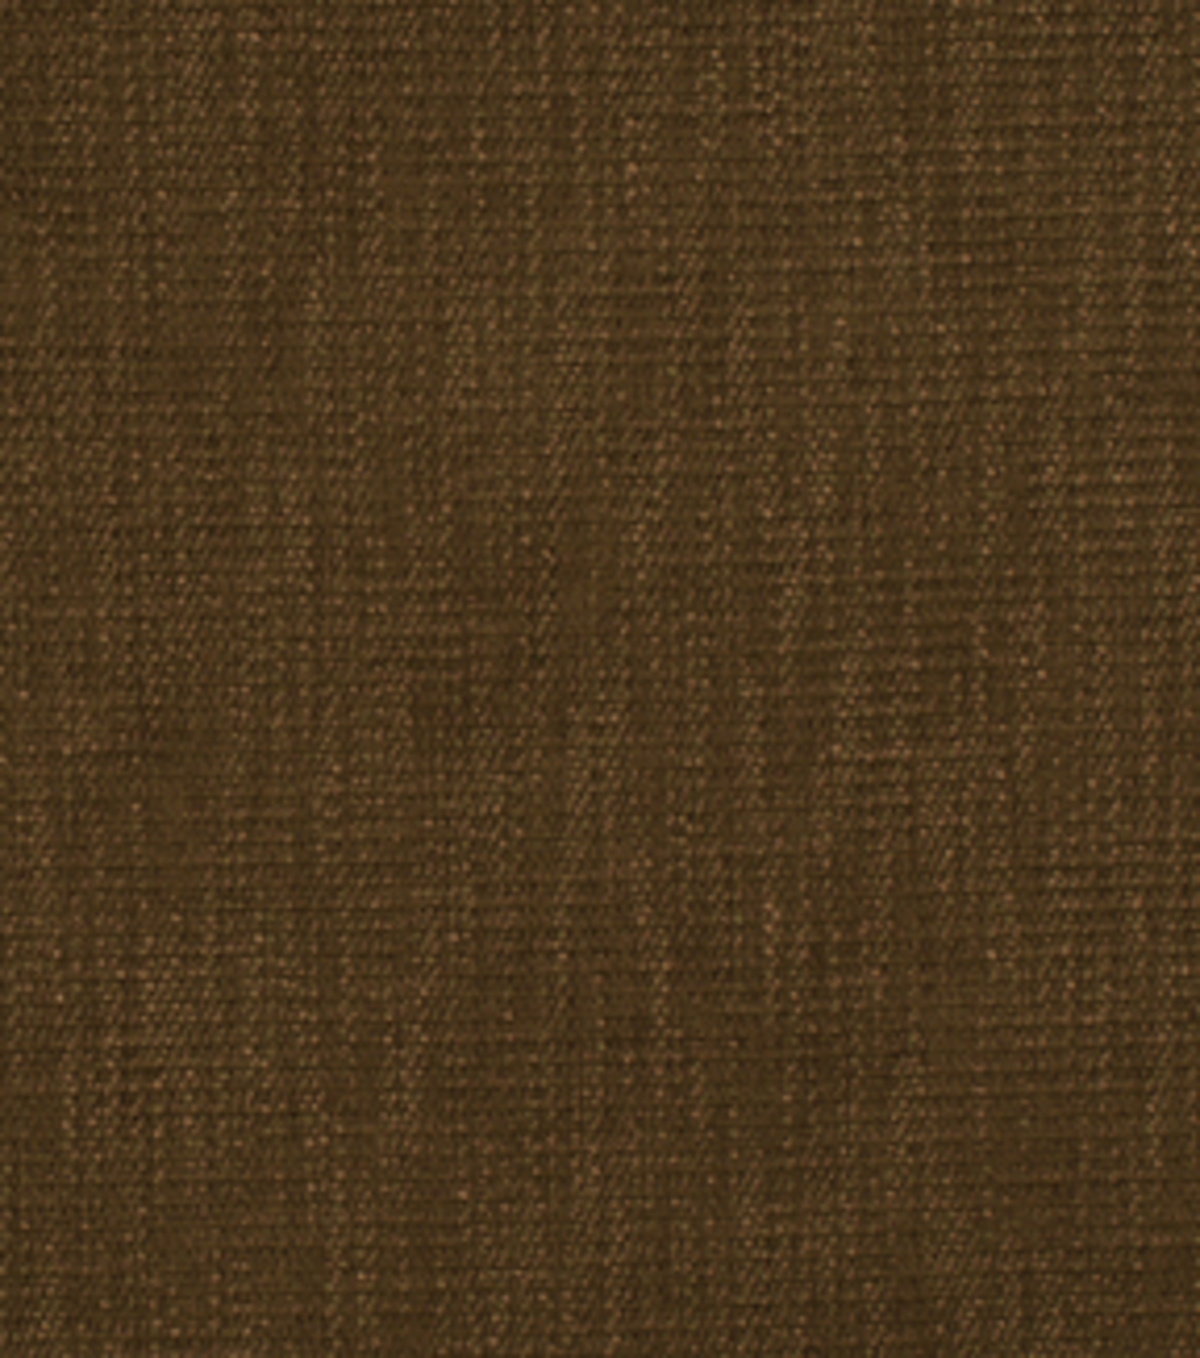 Home Decor 8\u0022x8\u0022 Fabric Swatch-Richloom Studio Hogan Wood